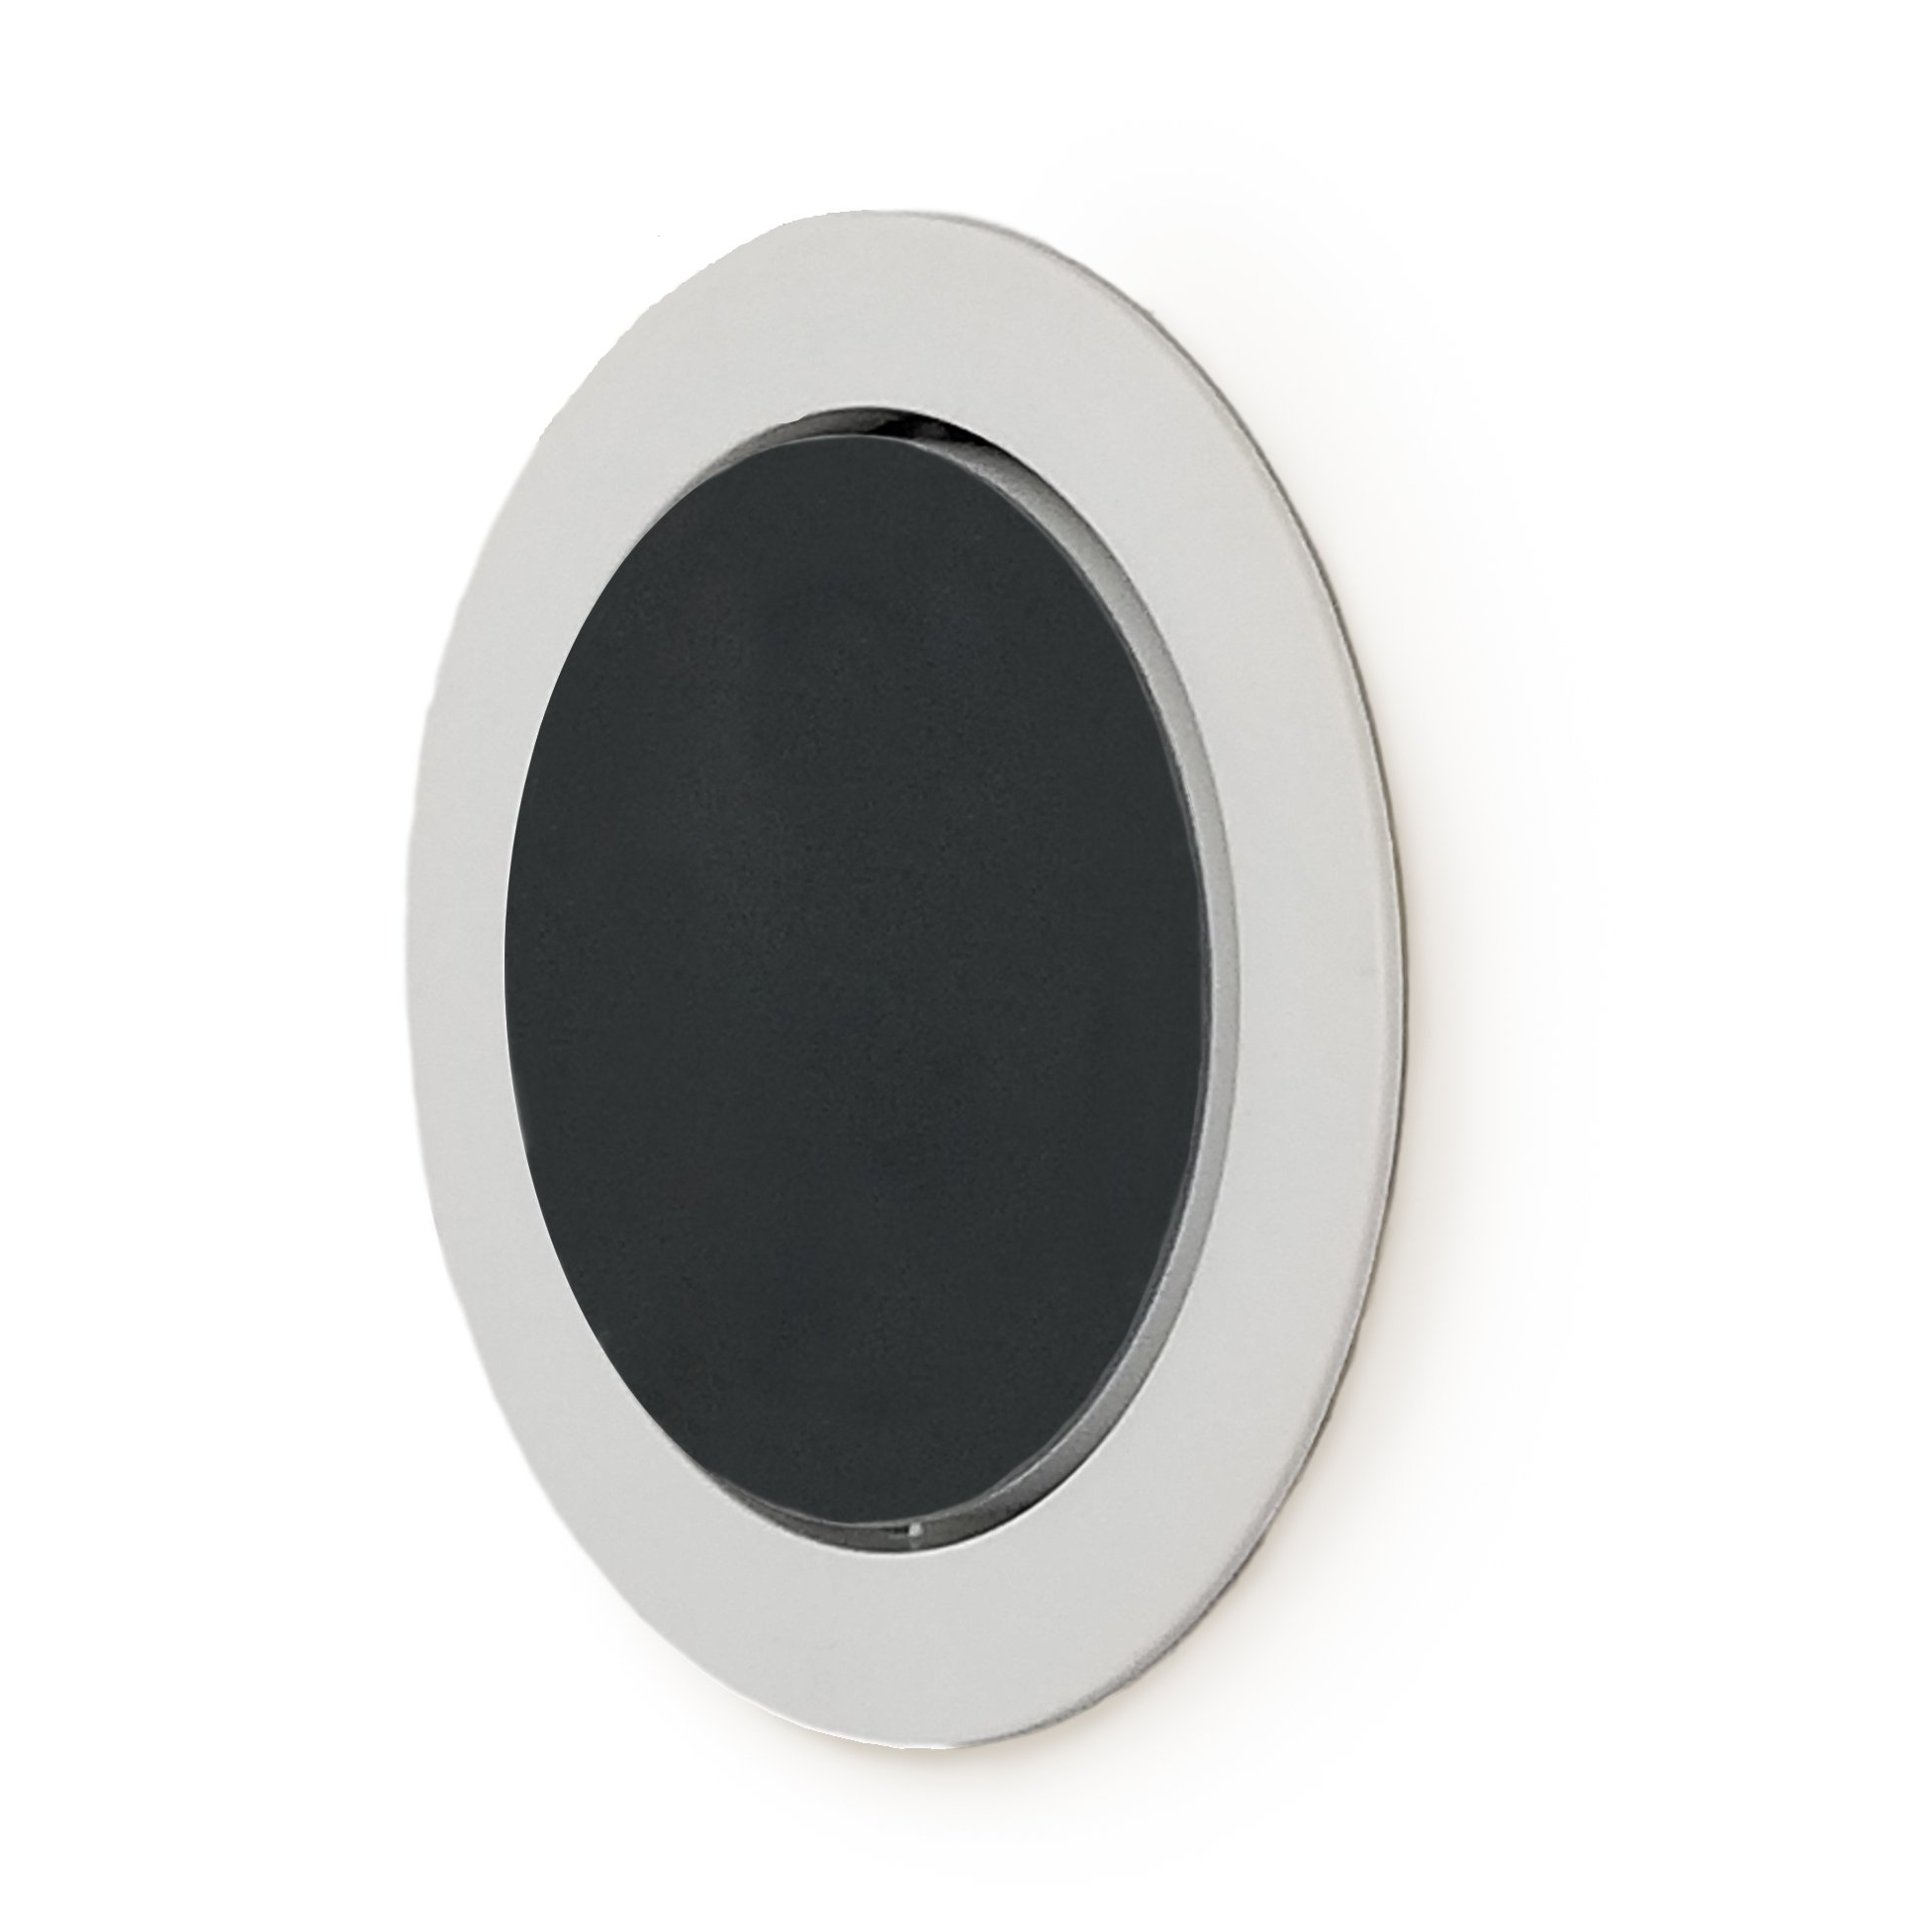 Mount Genie Flush Mount 2nd Gen - Built-in Wall or Ceiling Mount for Round Puck Speakers with Included Wiring (5-Pack)